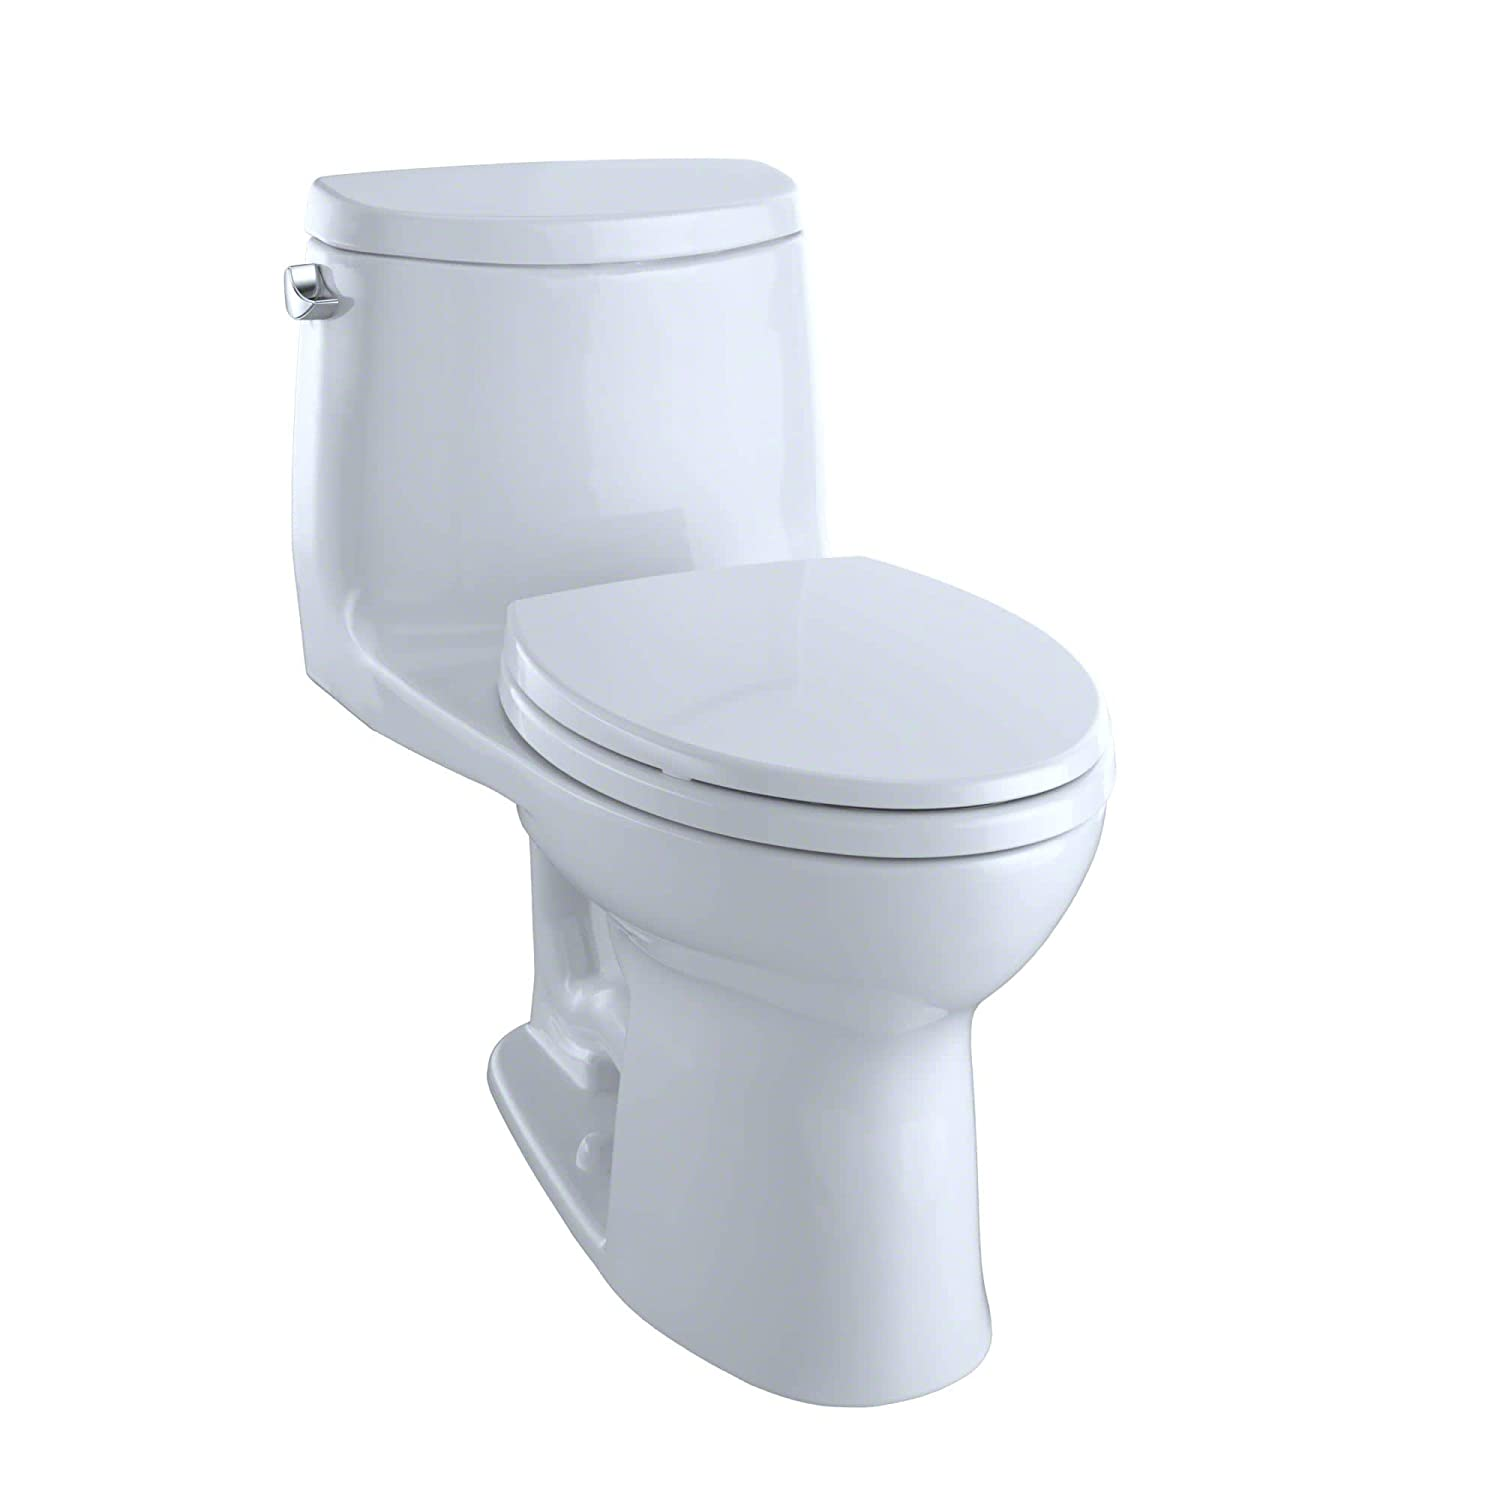 Top 5 Best One Piece Toilets Reviews in 2020 4